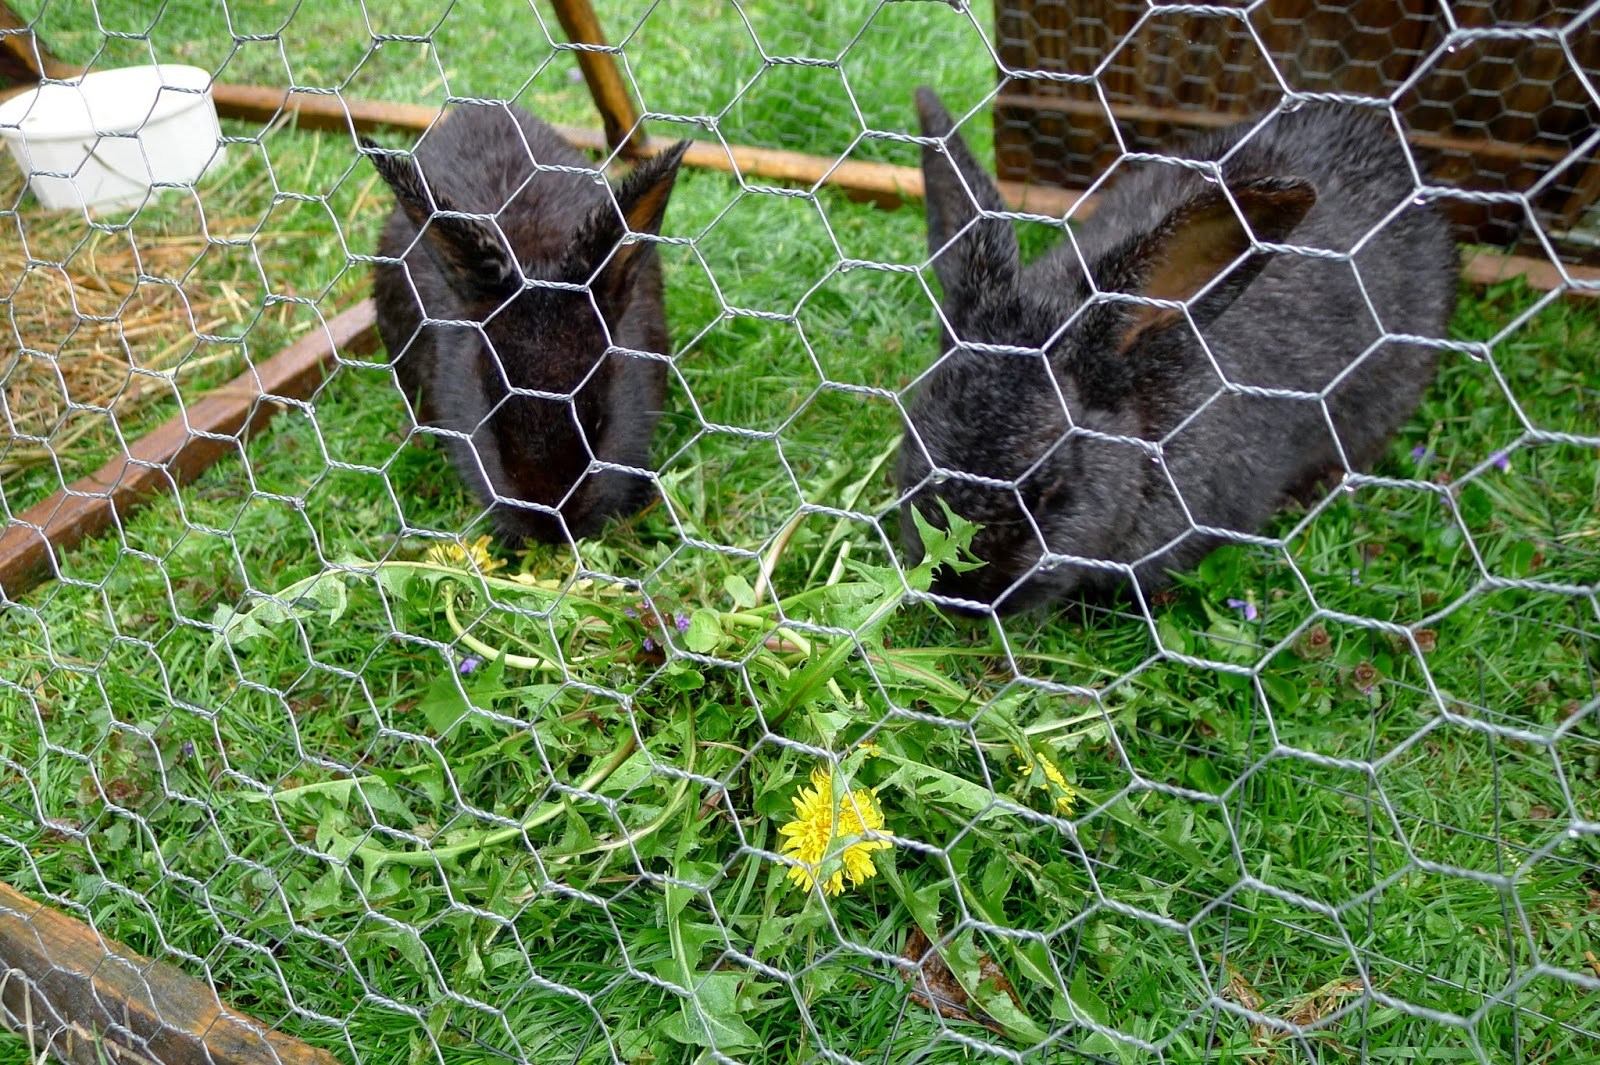 Raising grass fed rabbits for meat, urban farming